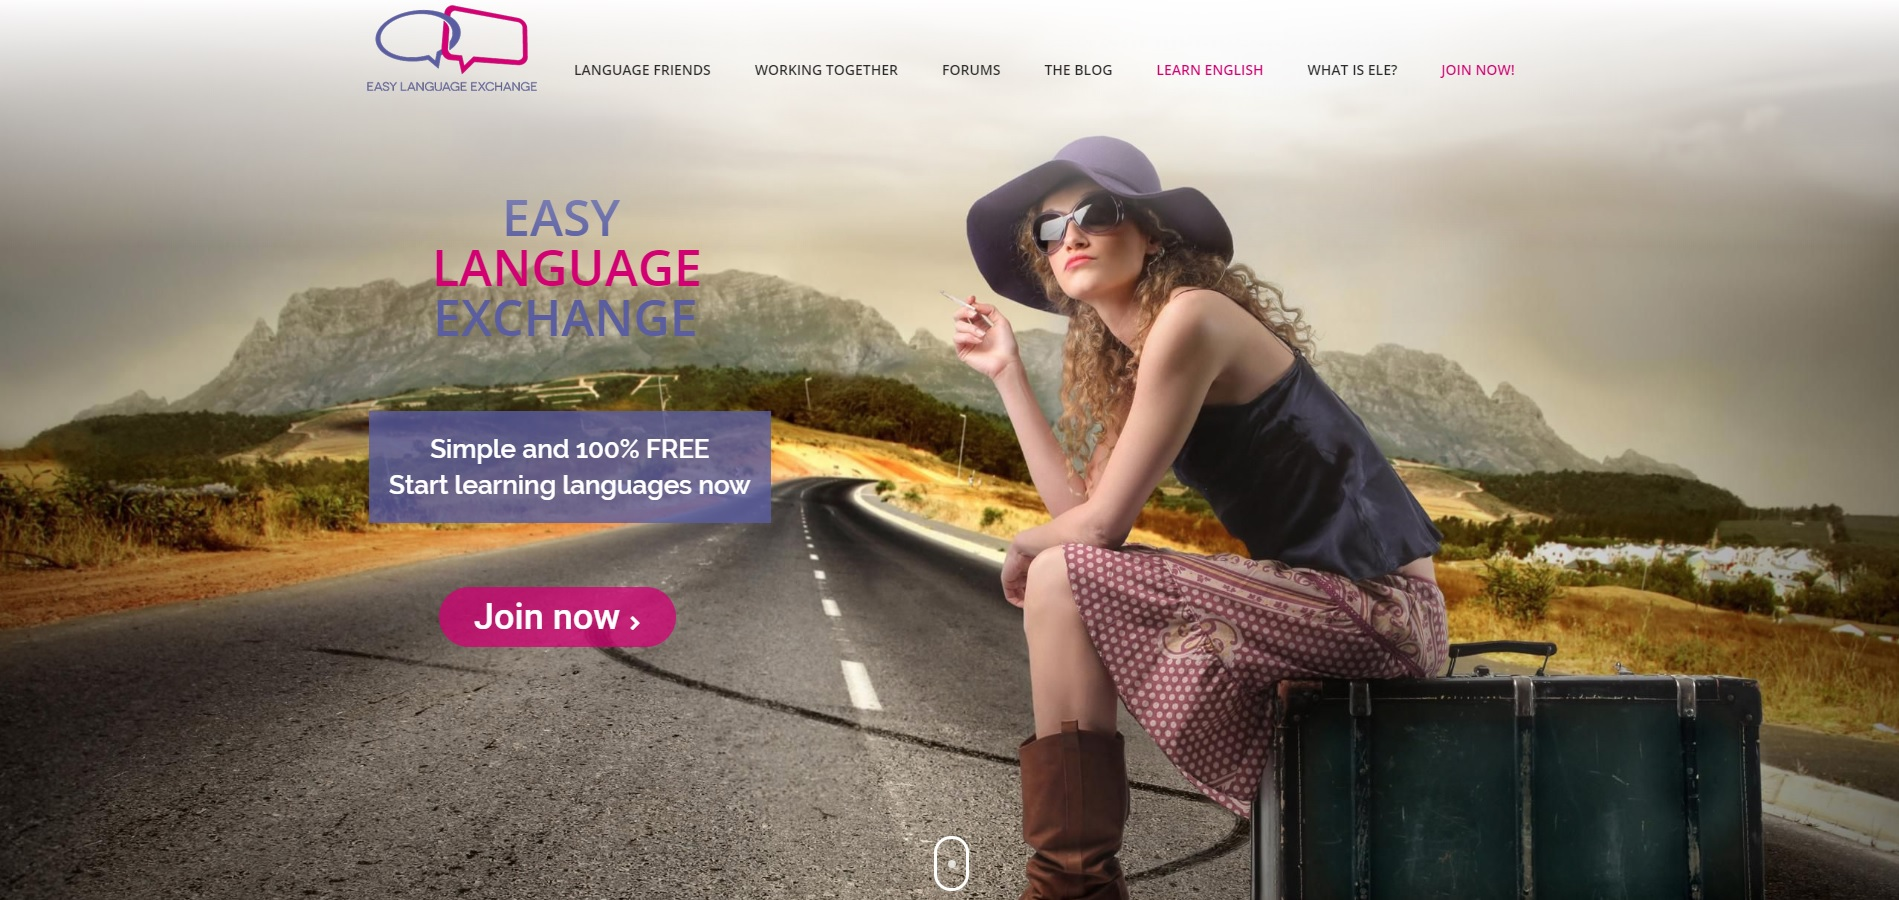 Easy Language Exchange site